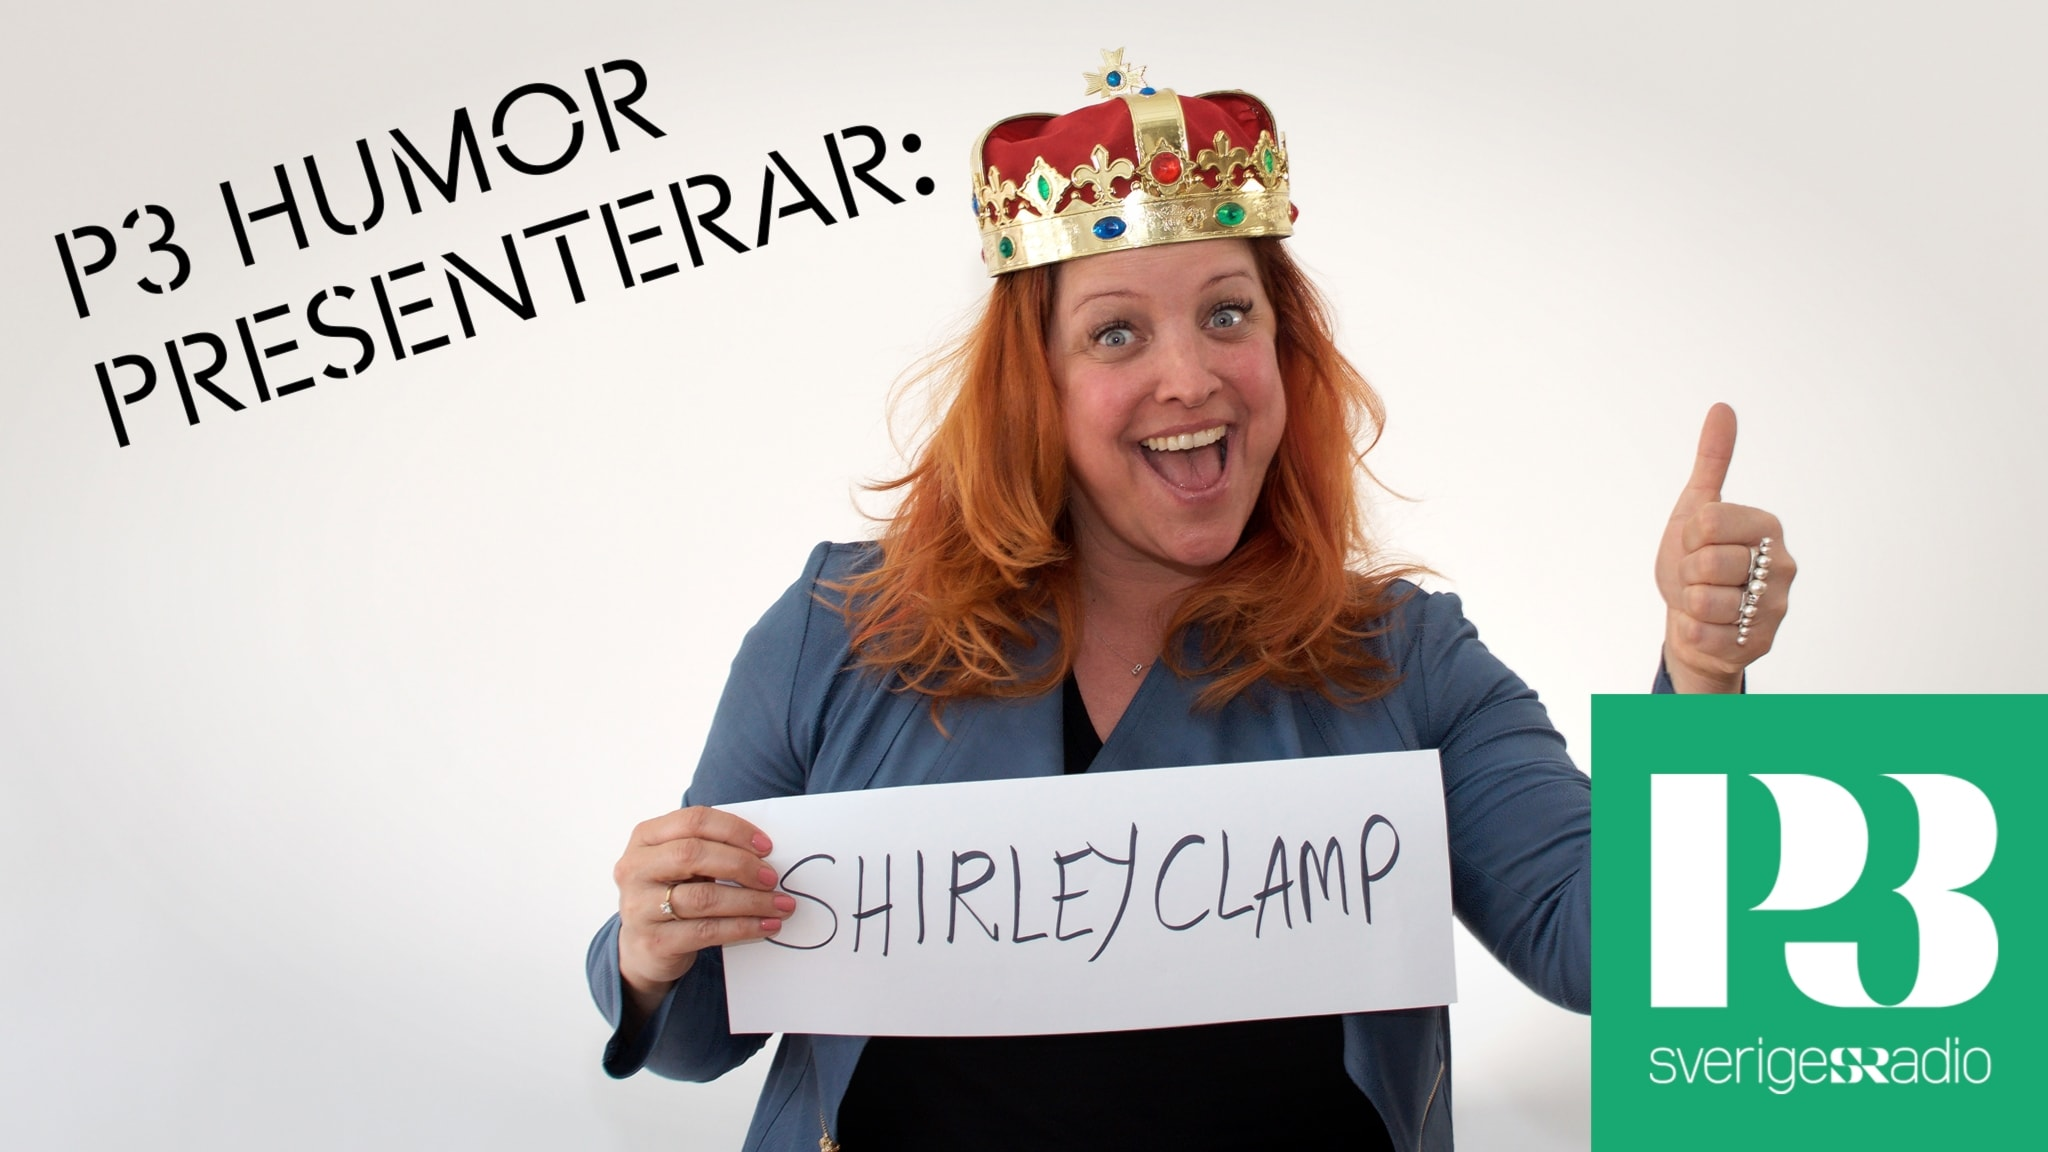 P3 Humor Presenterar: Shirley Clamp